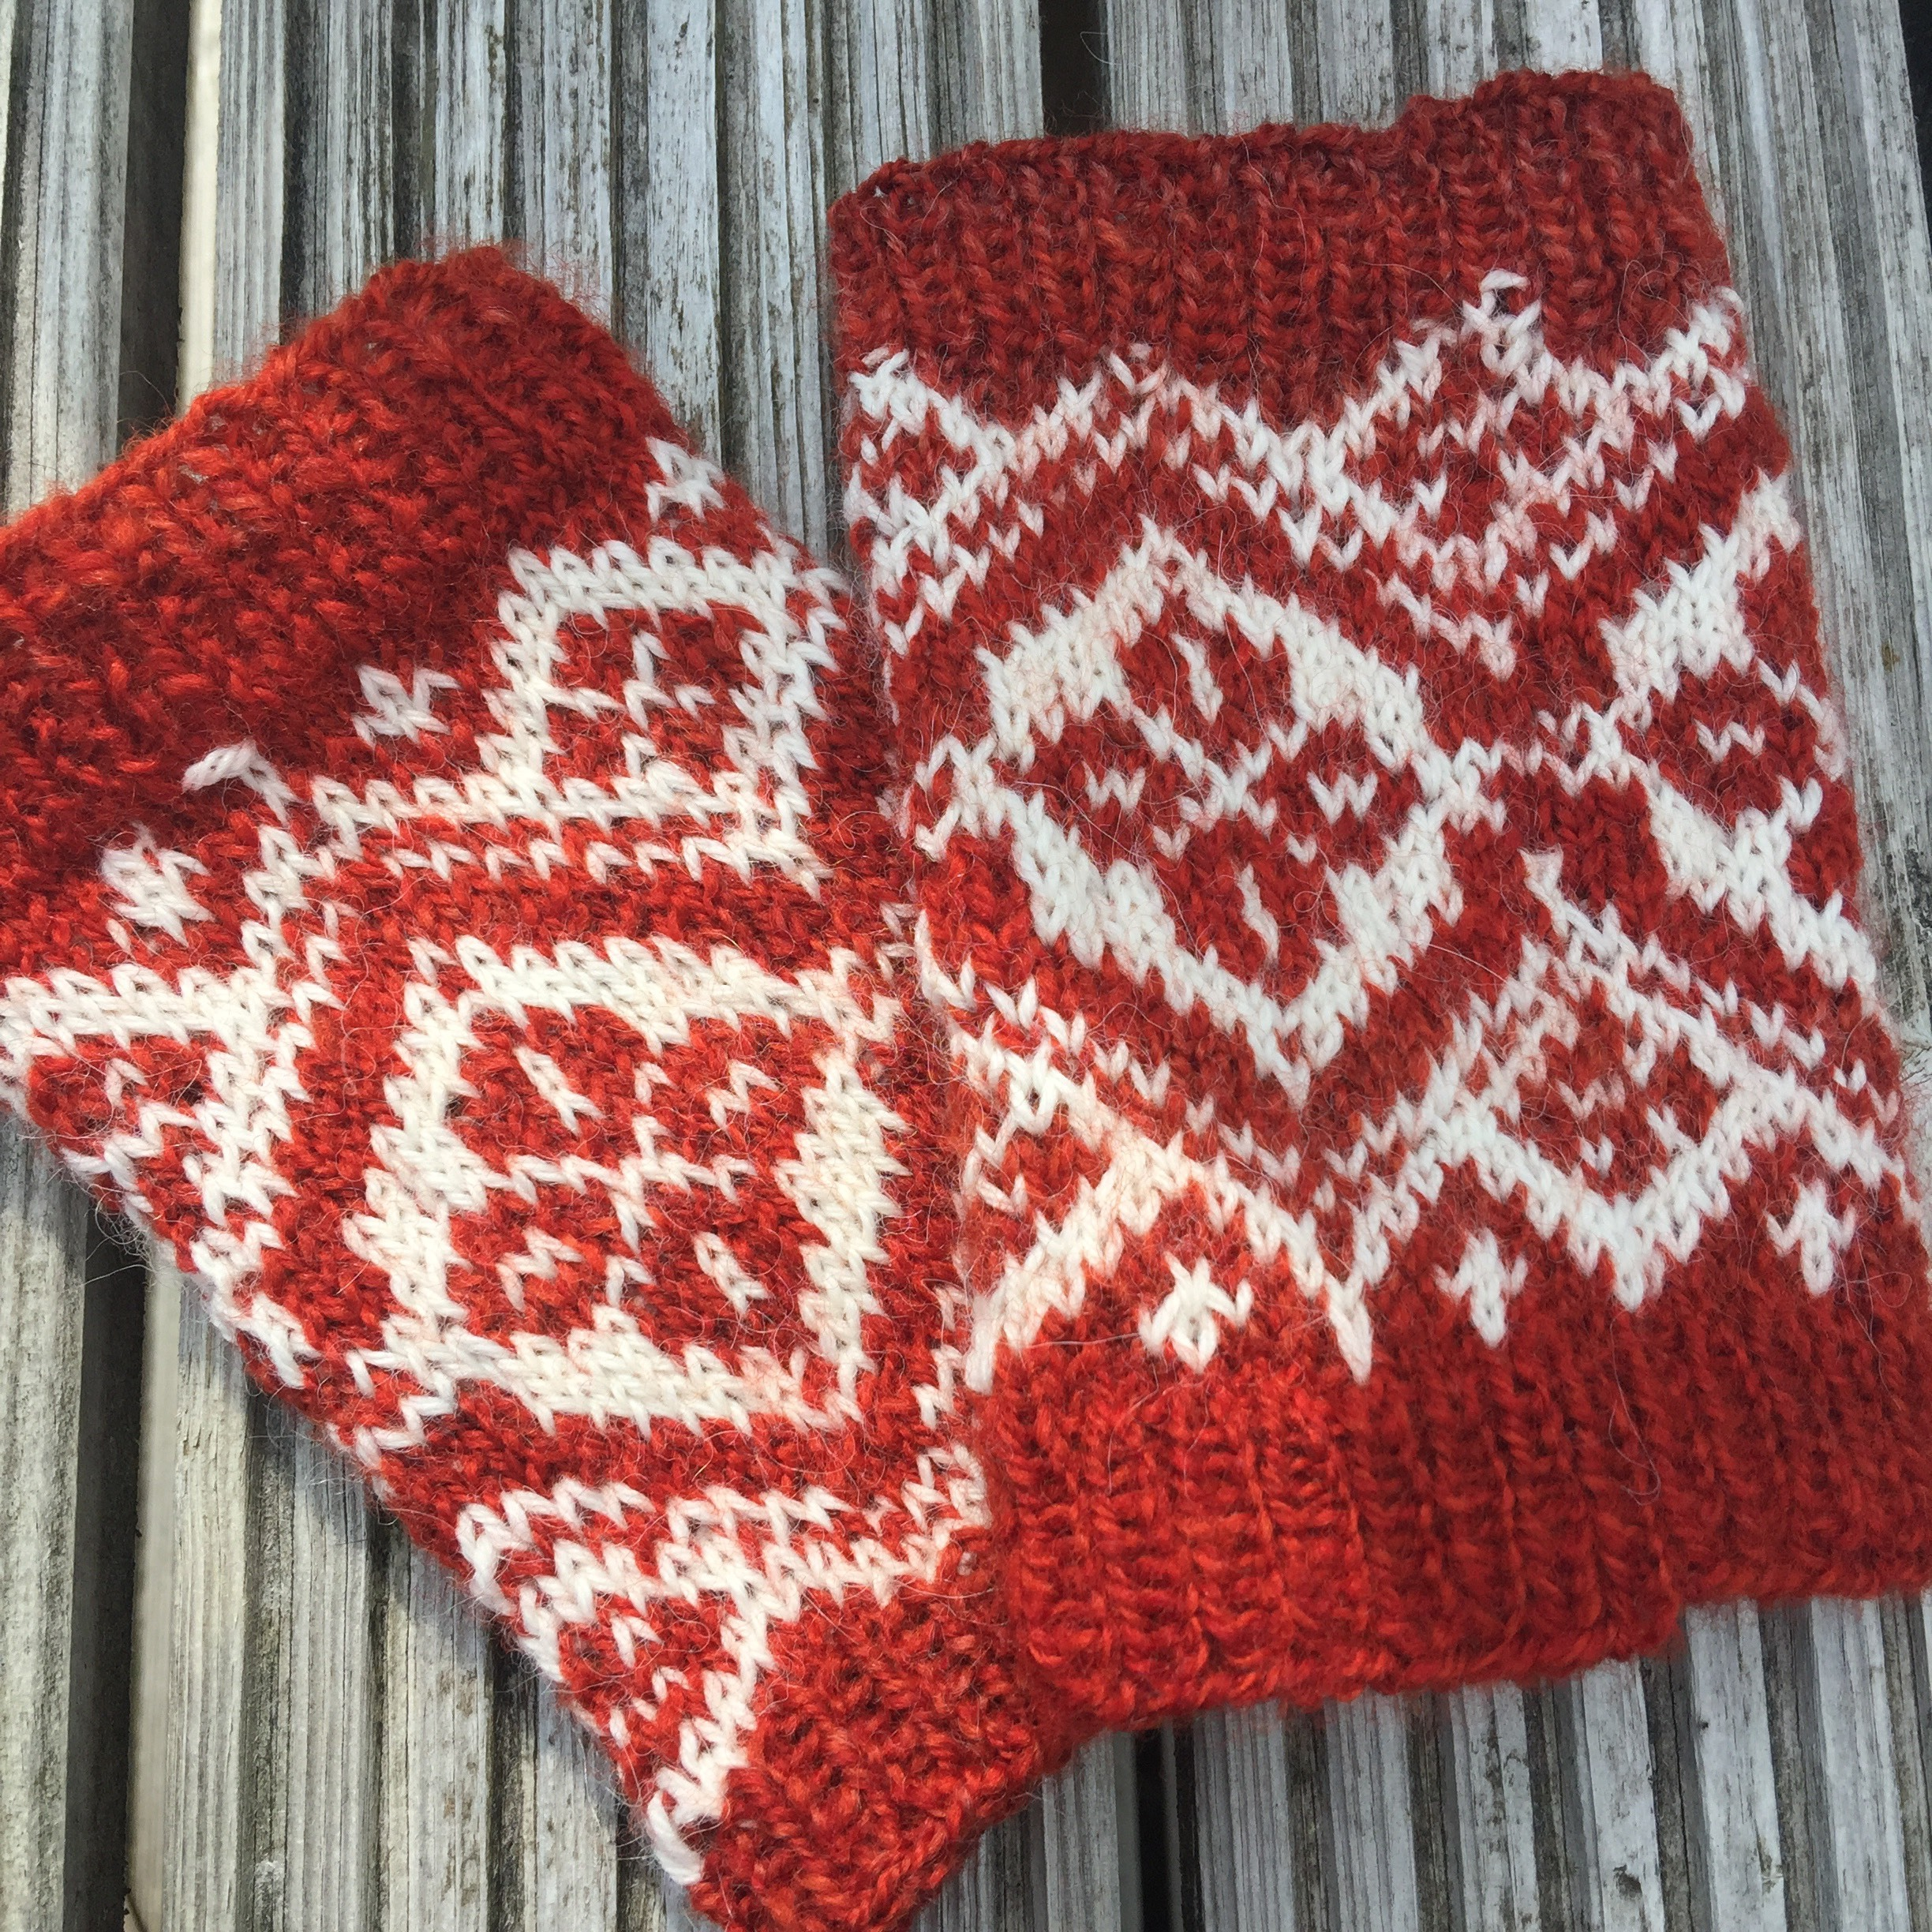 Have a lot of fibre left over, so these are hand/wrist warmers using the same pattern.    Haha, I can see some mistakes….but I dont at all mind :)